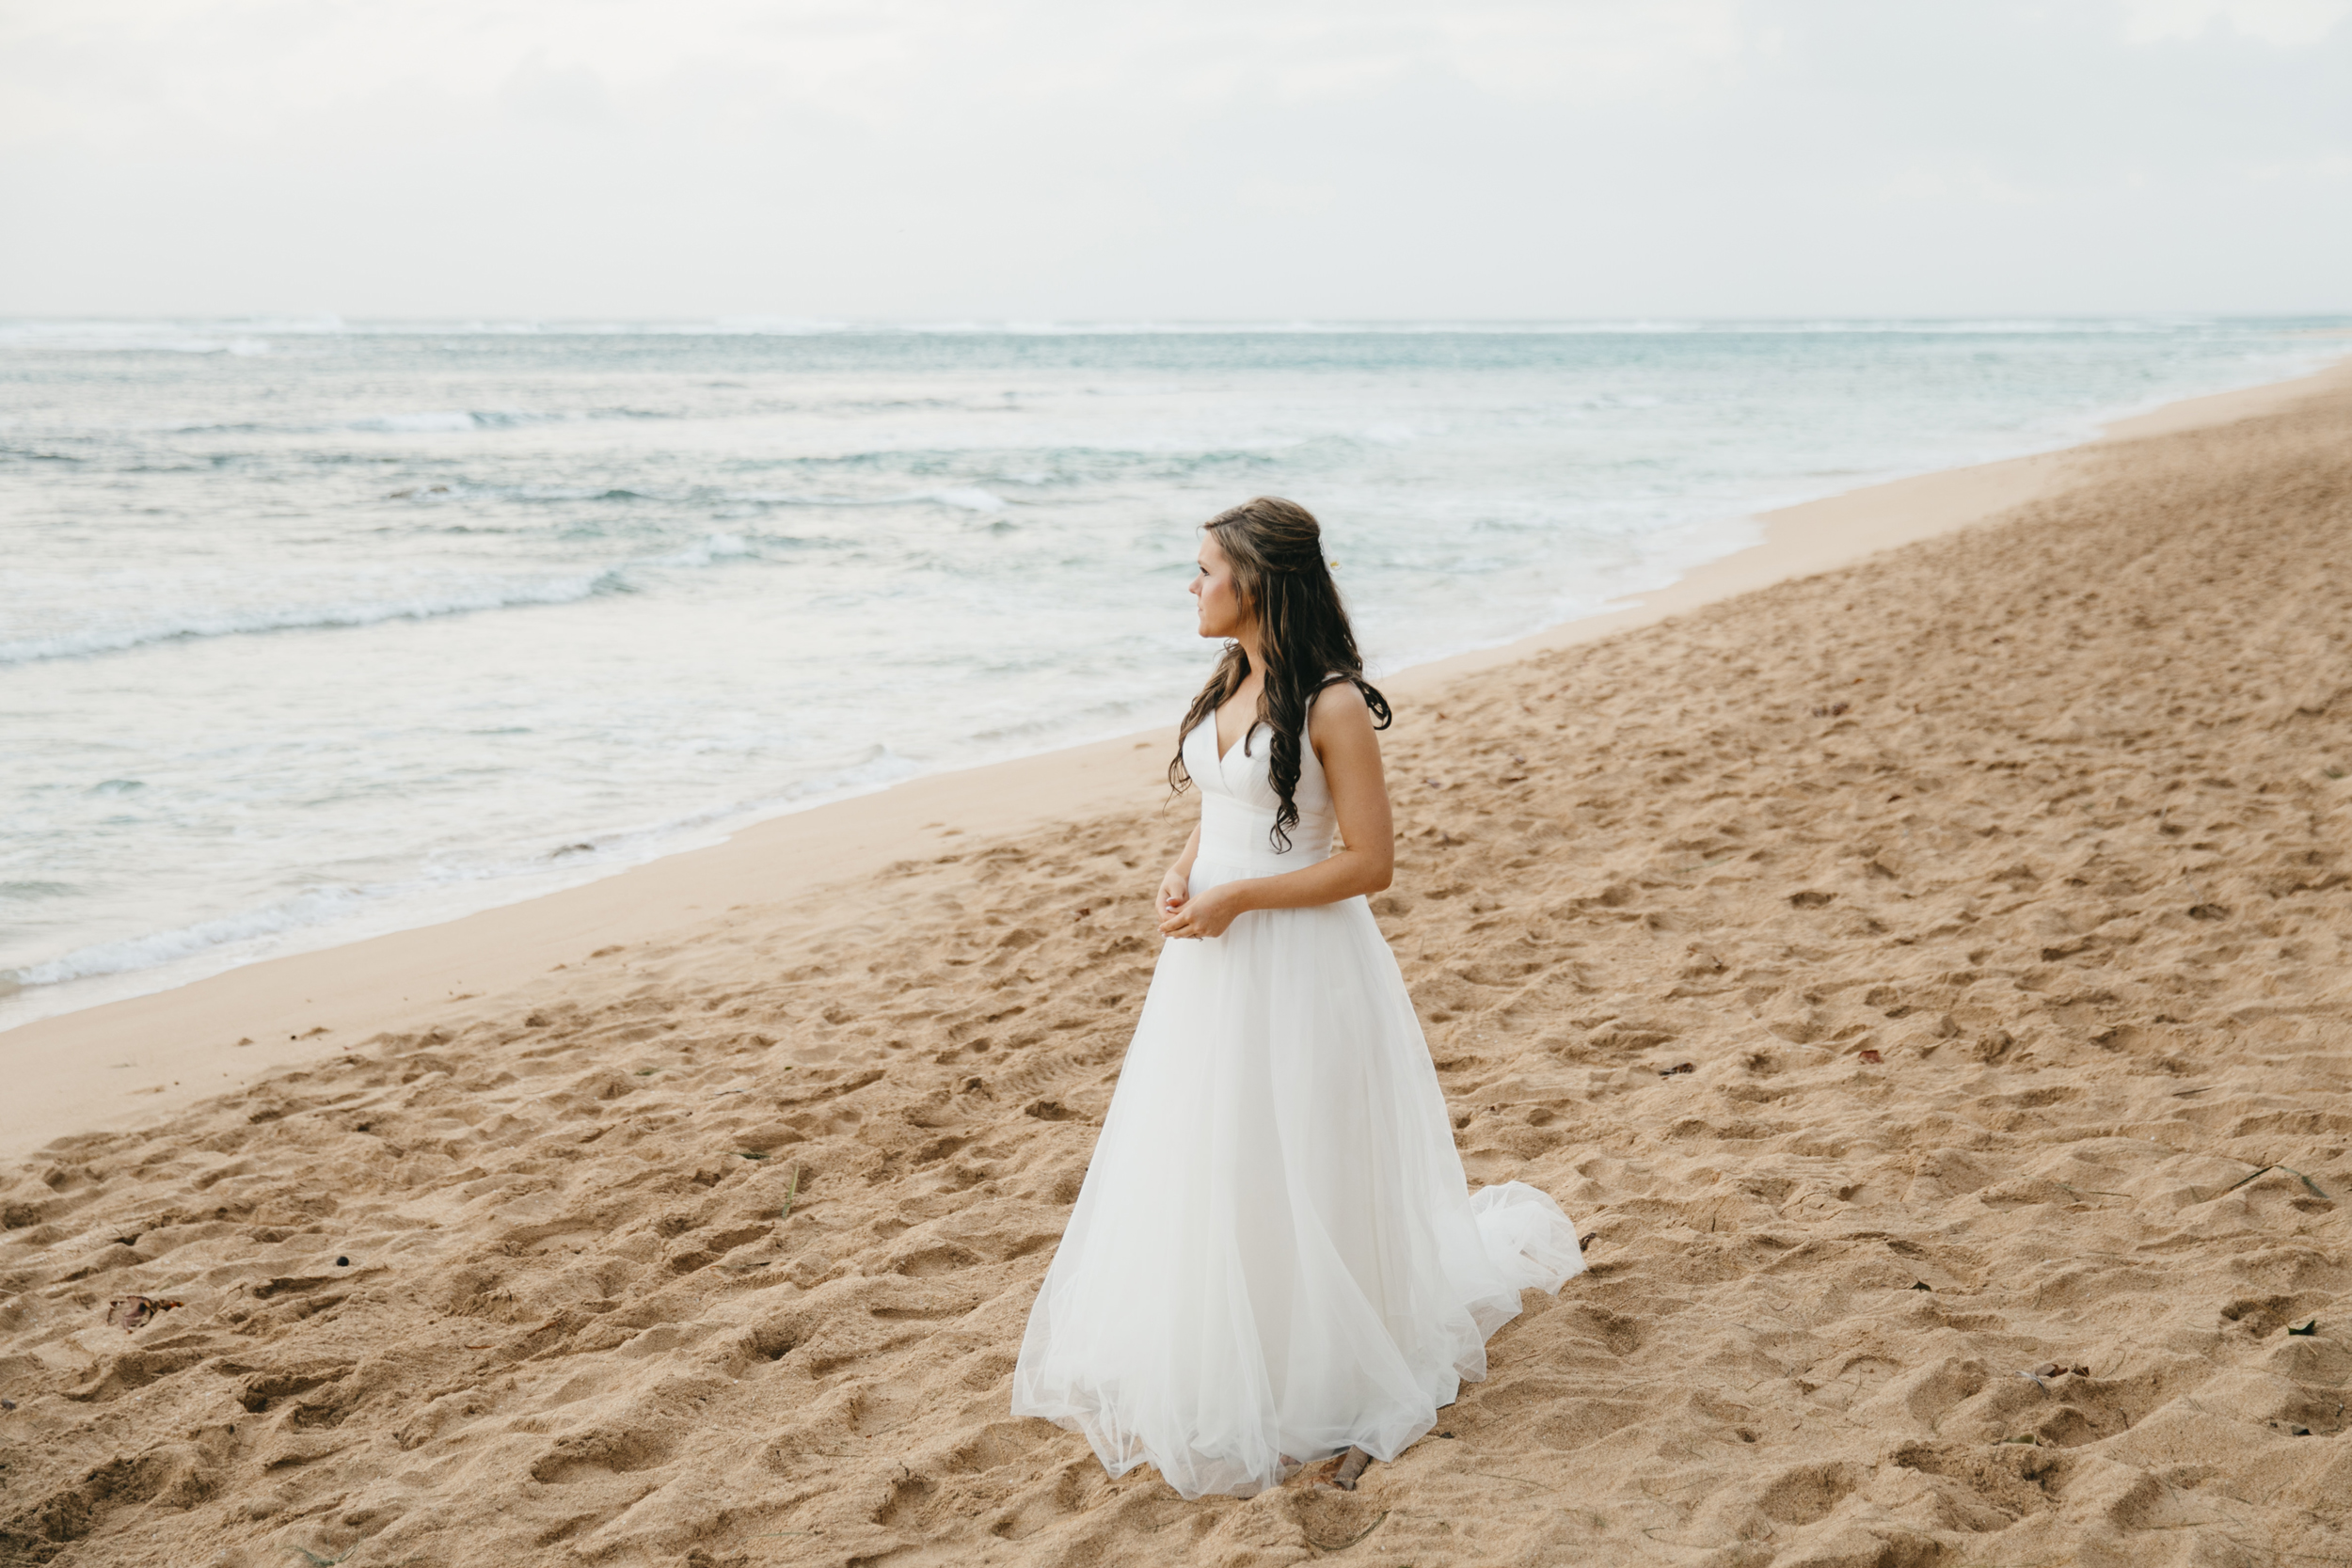 Bride stands on Tunnels Beach during Kauai Elopement by Adventure Wedding photographers Colby and Jess